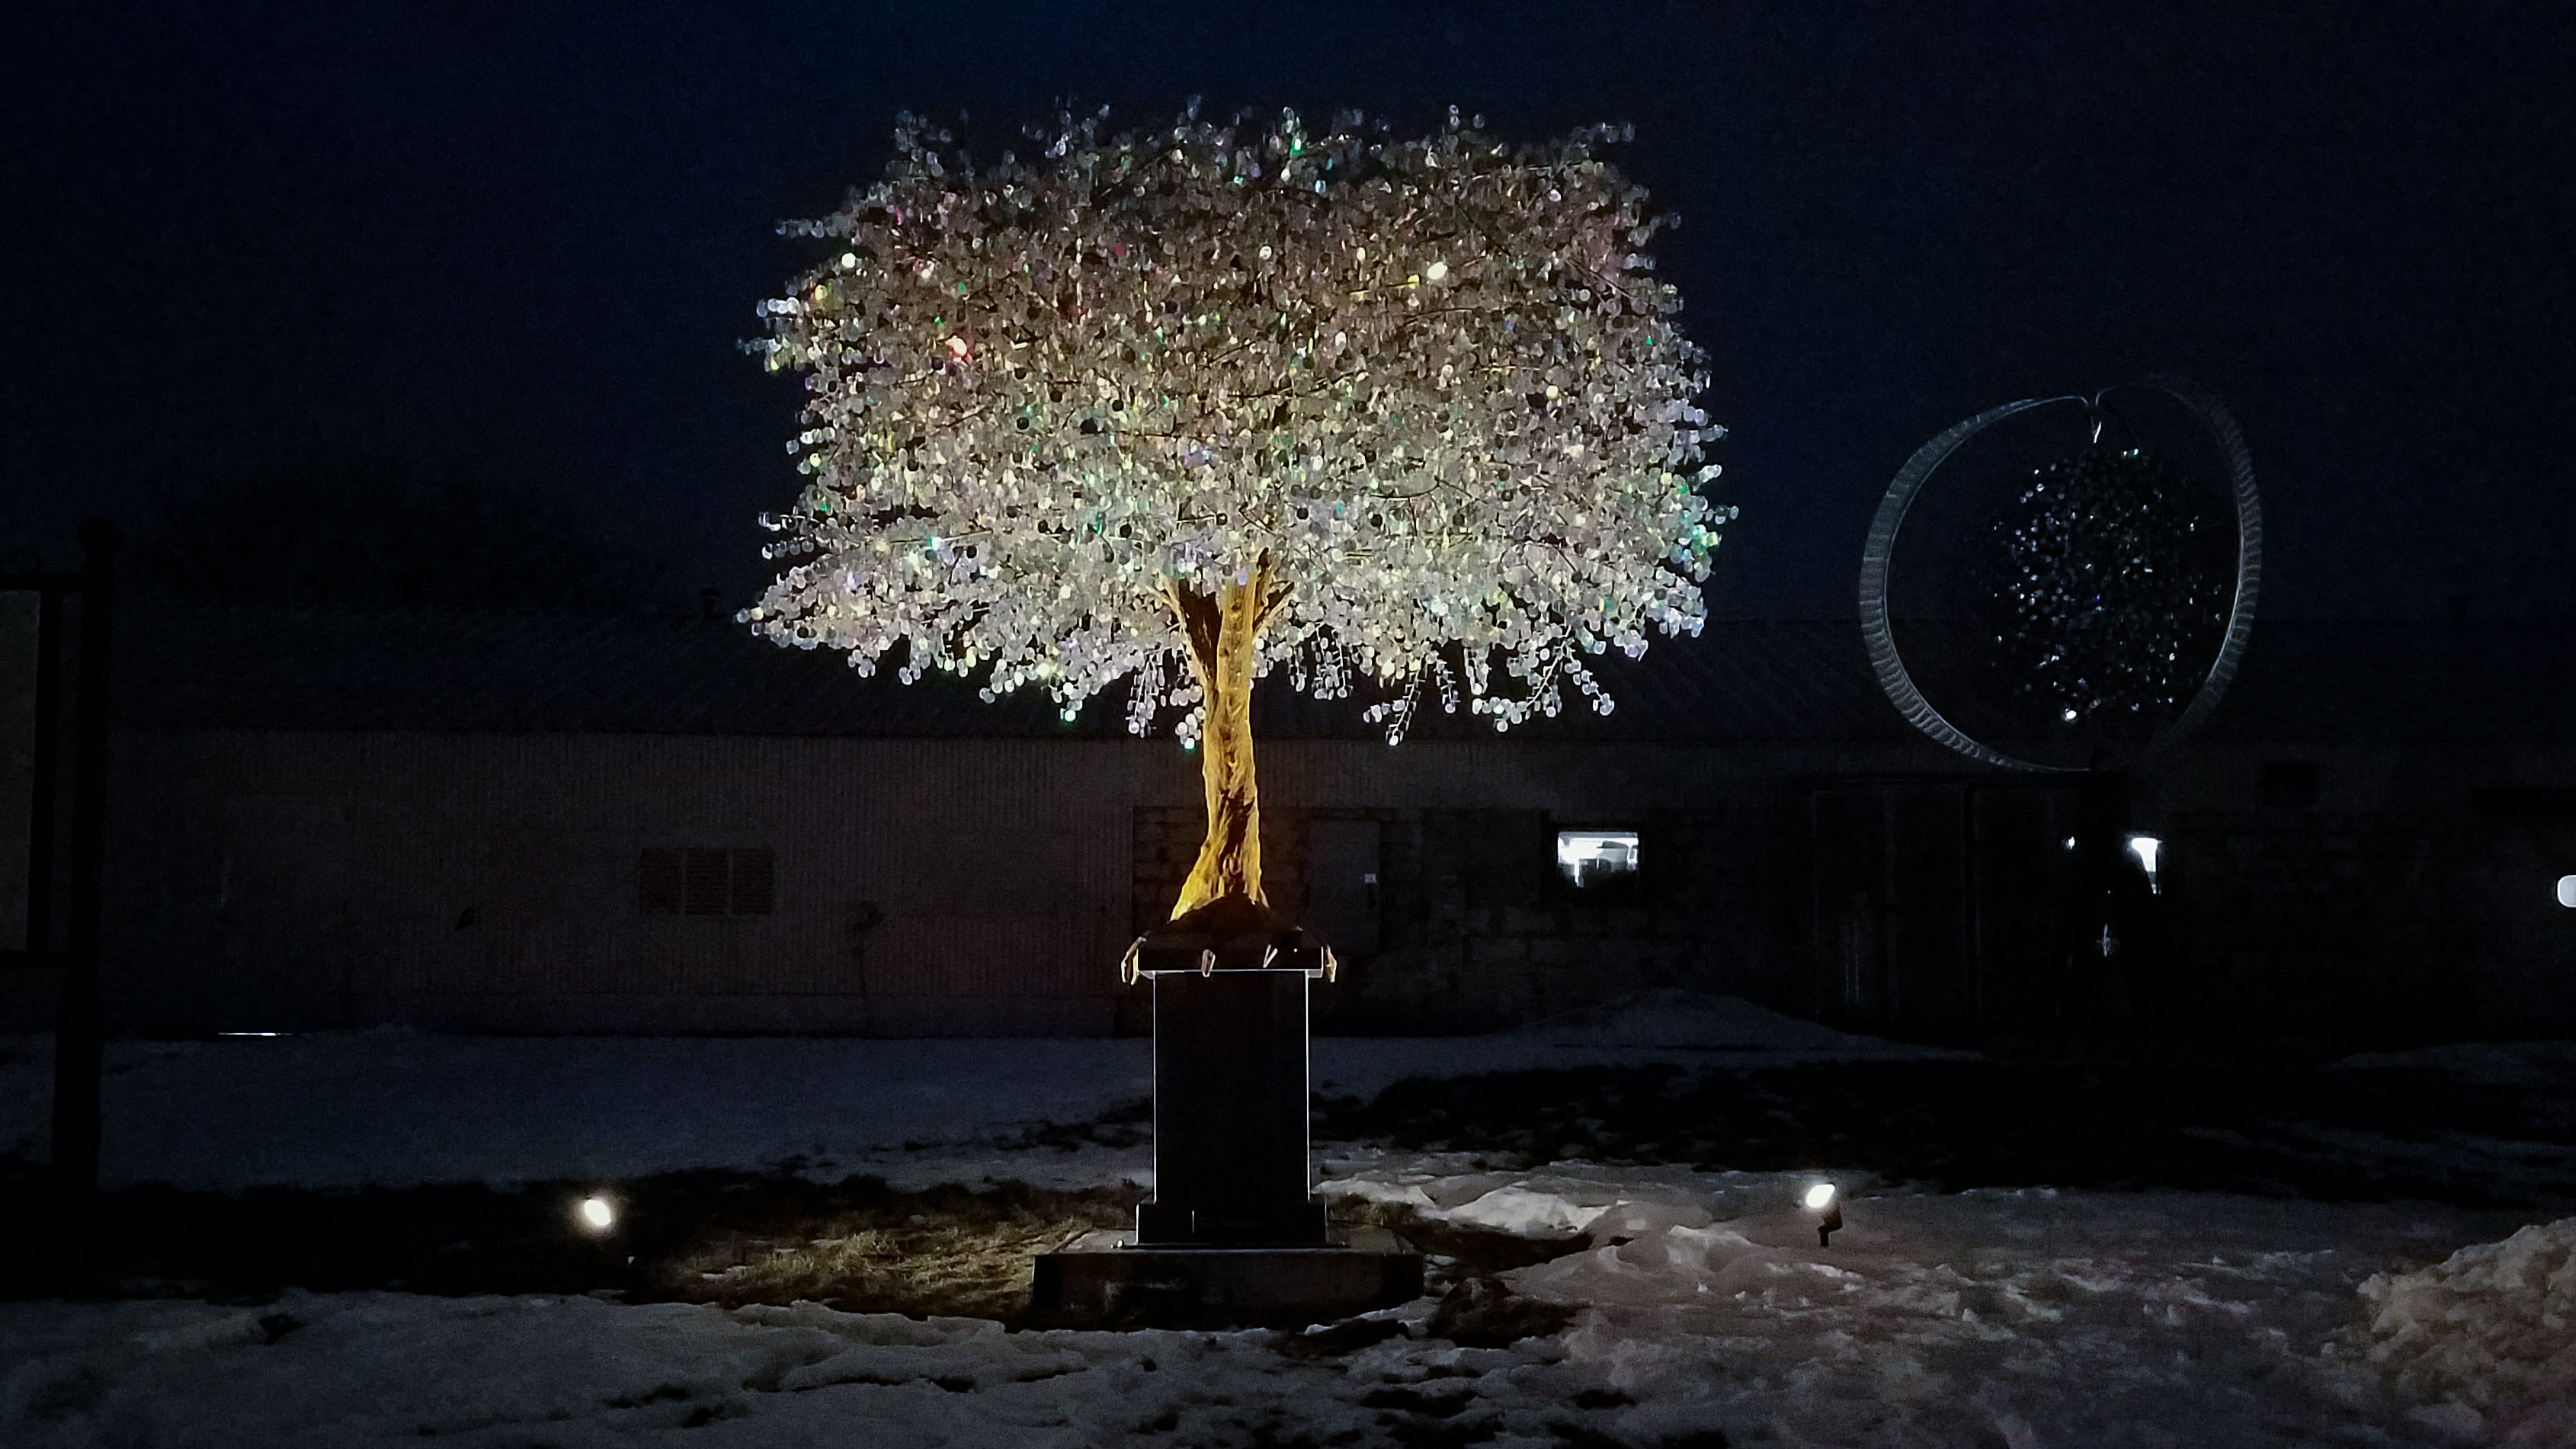 <p>A 13-foot-custom-made tree lit up in front Ritchie Metal Works, December 20, 2017. (WLUK){&amp;nbsp;}</p><p></p>